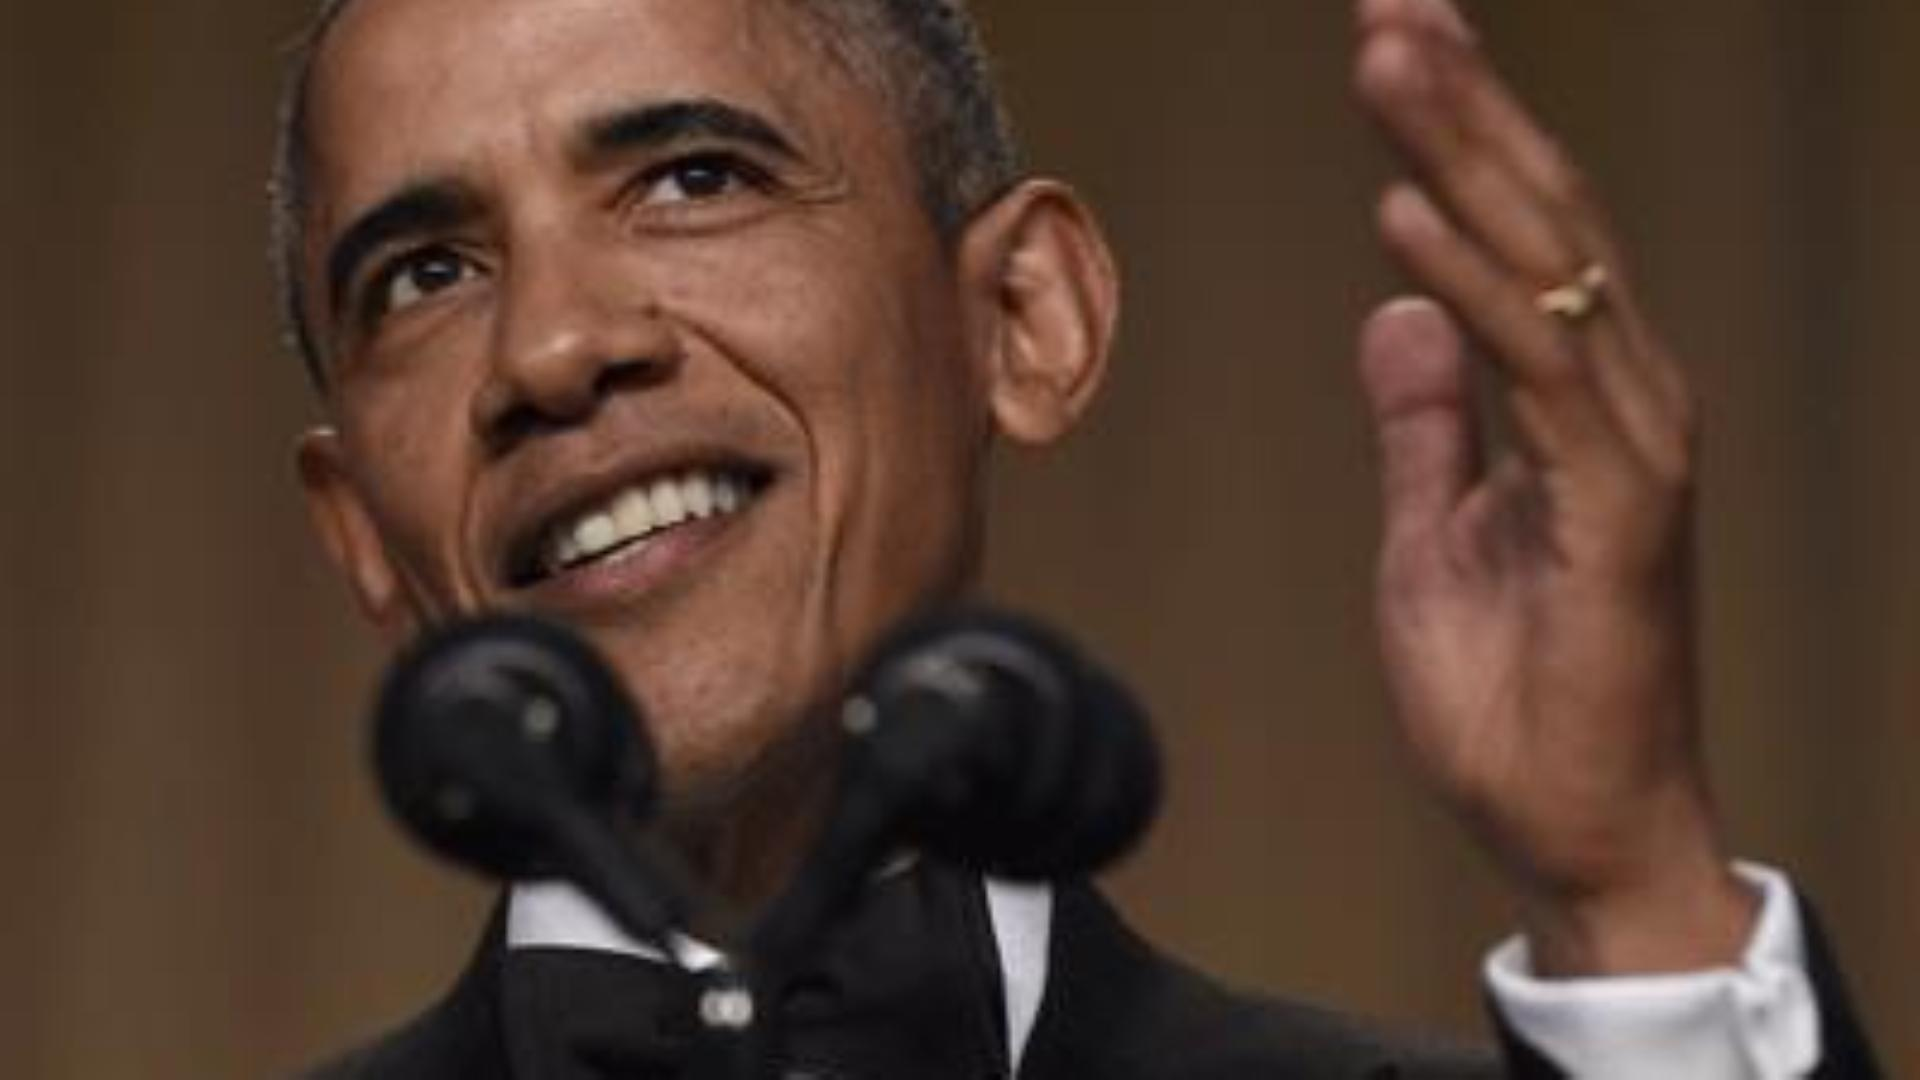 Obama Praises Press, Drops Mic at WHCD Close